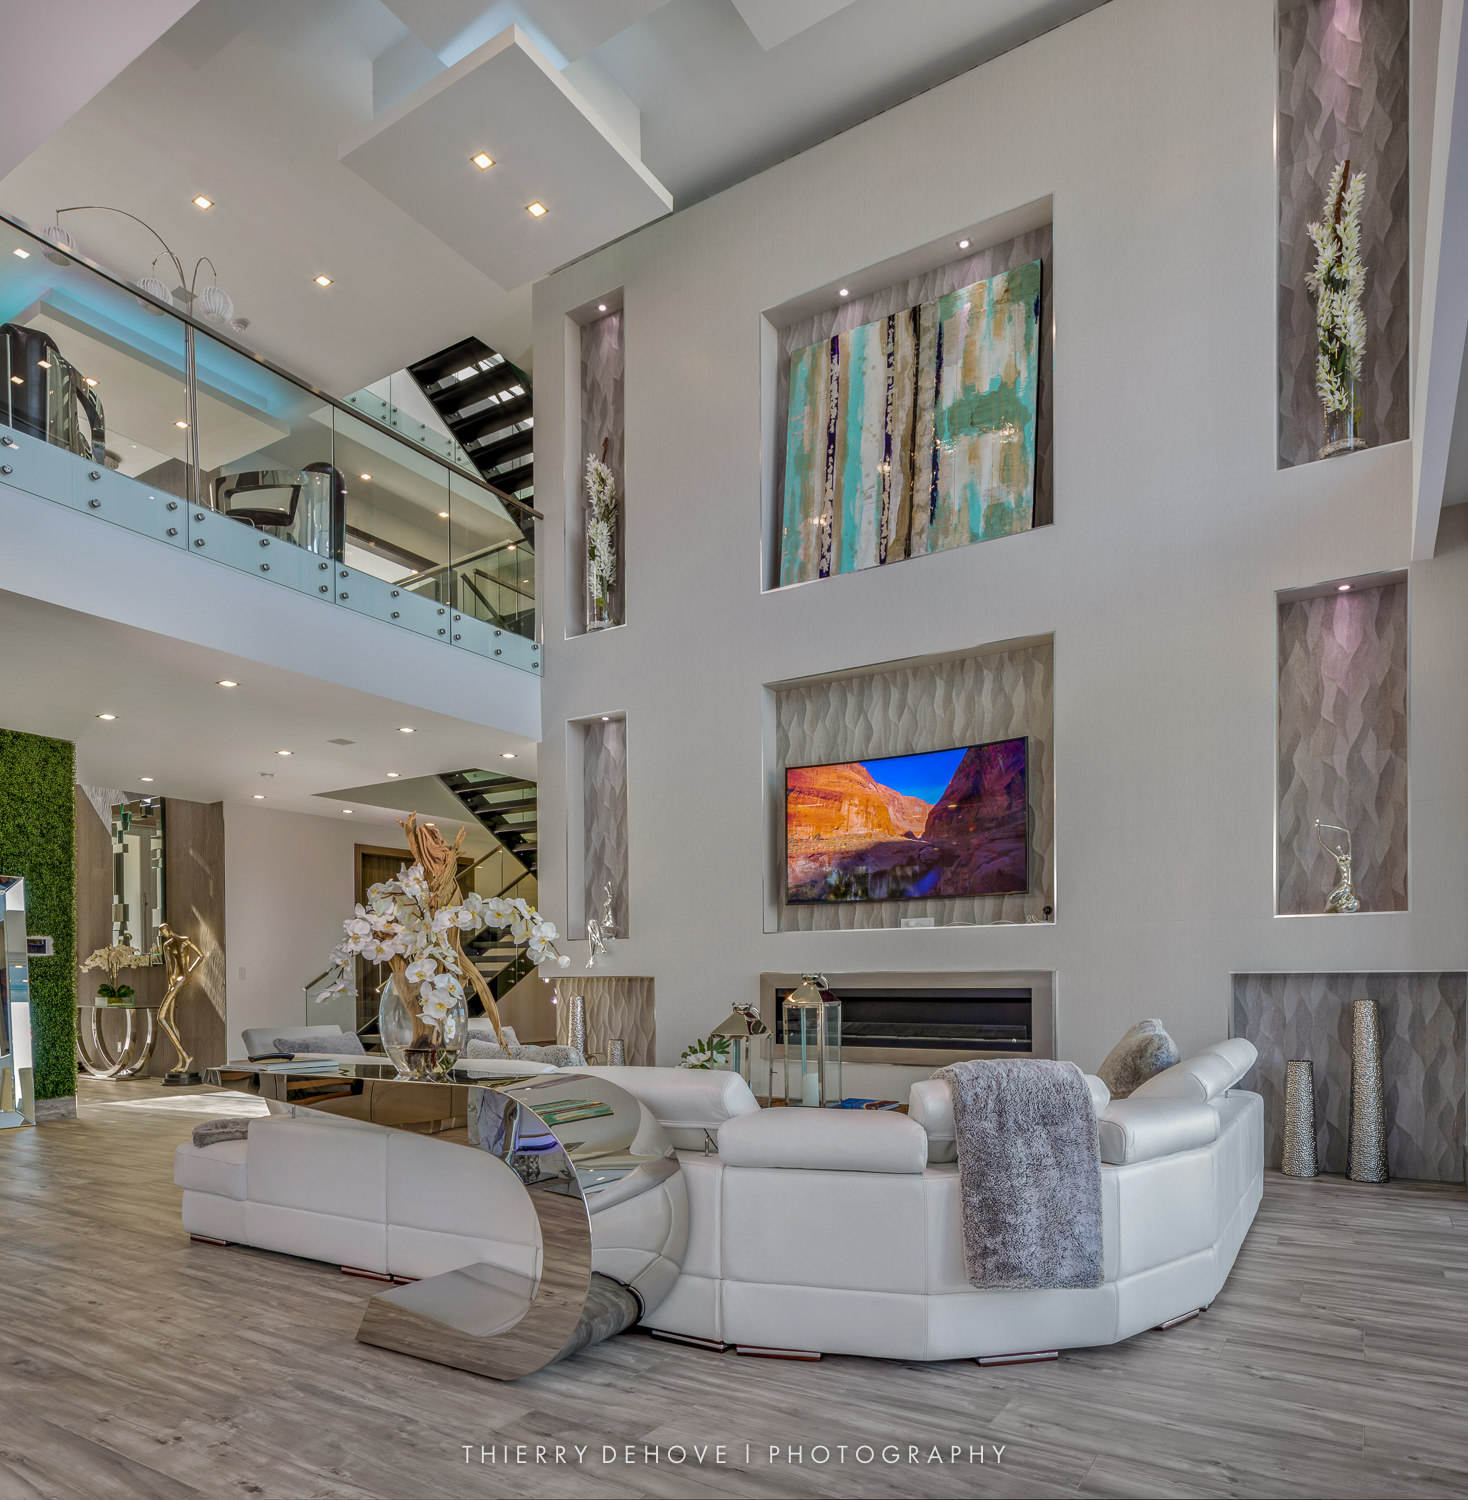 Attrayant Home Interior Design Photography In Fort Lauderdale